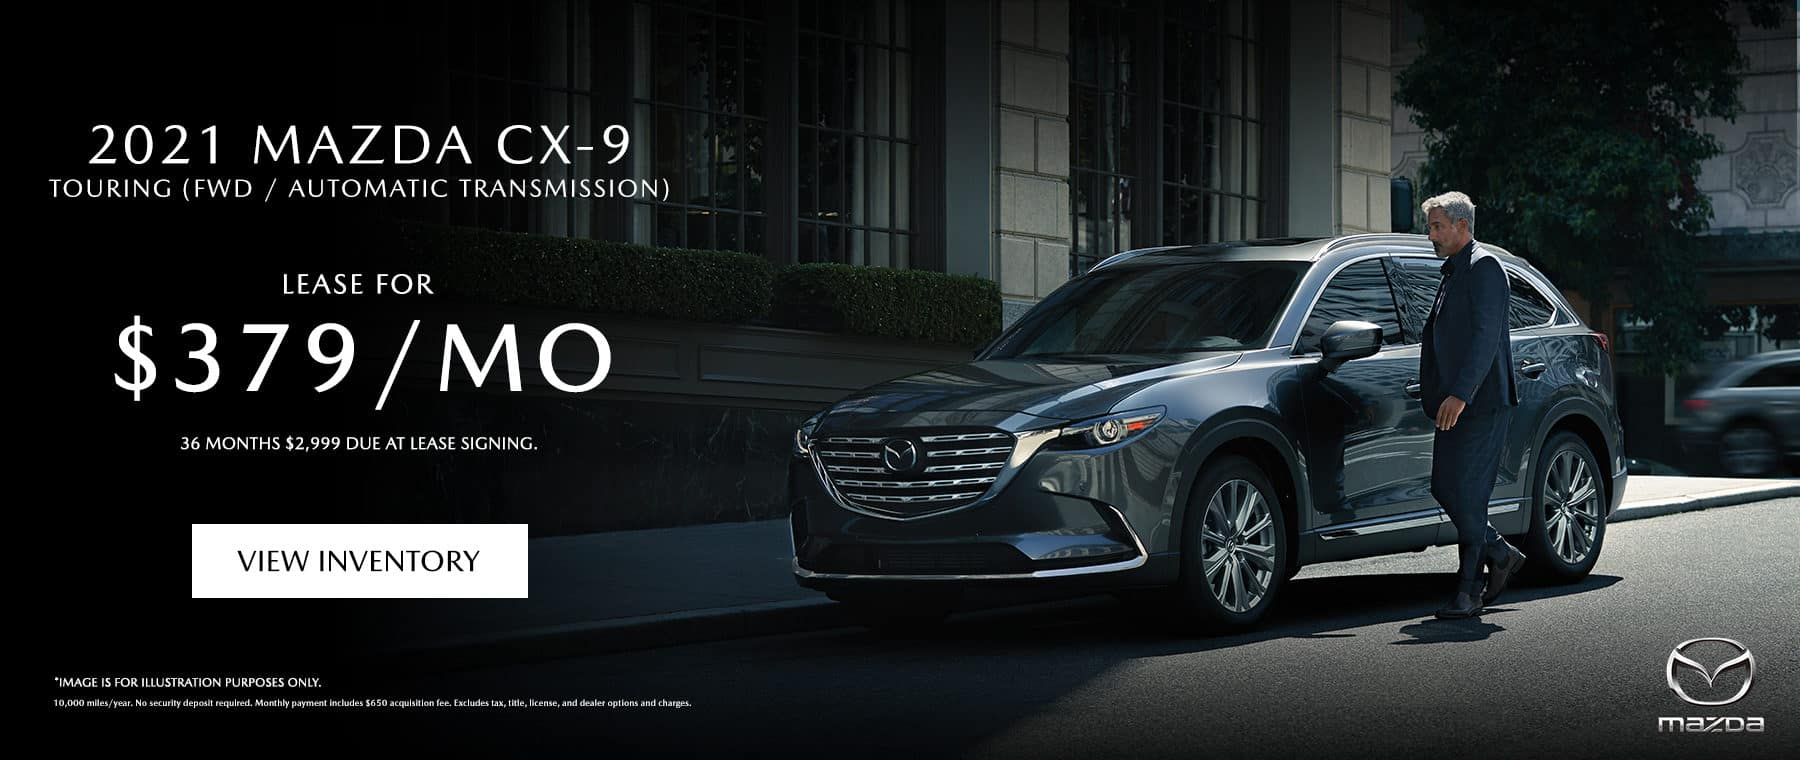 2021 CX-9 Touring $379 a month / 36 months $2,999 due at lease signing.